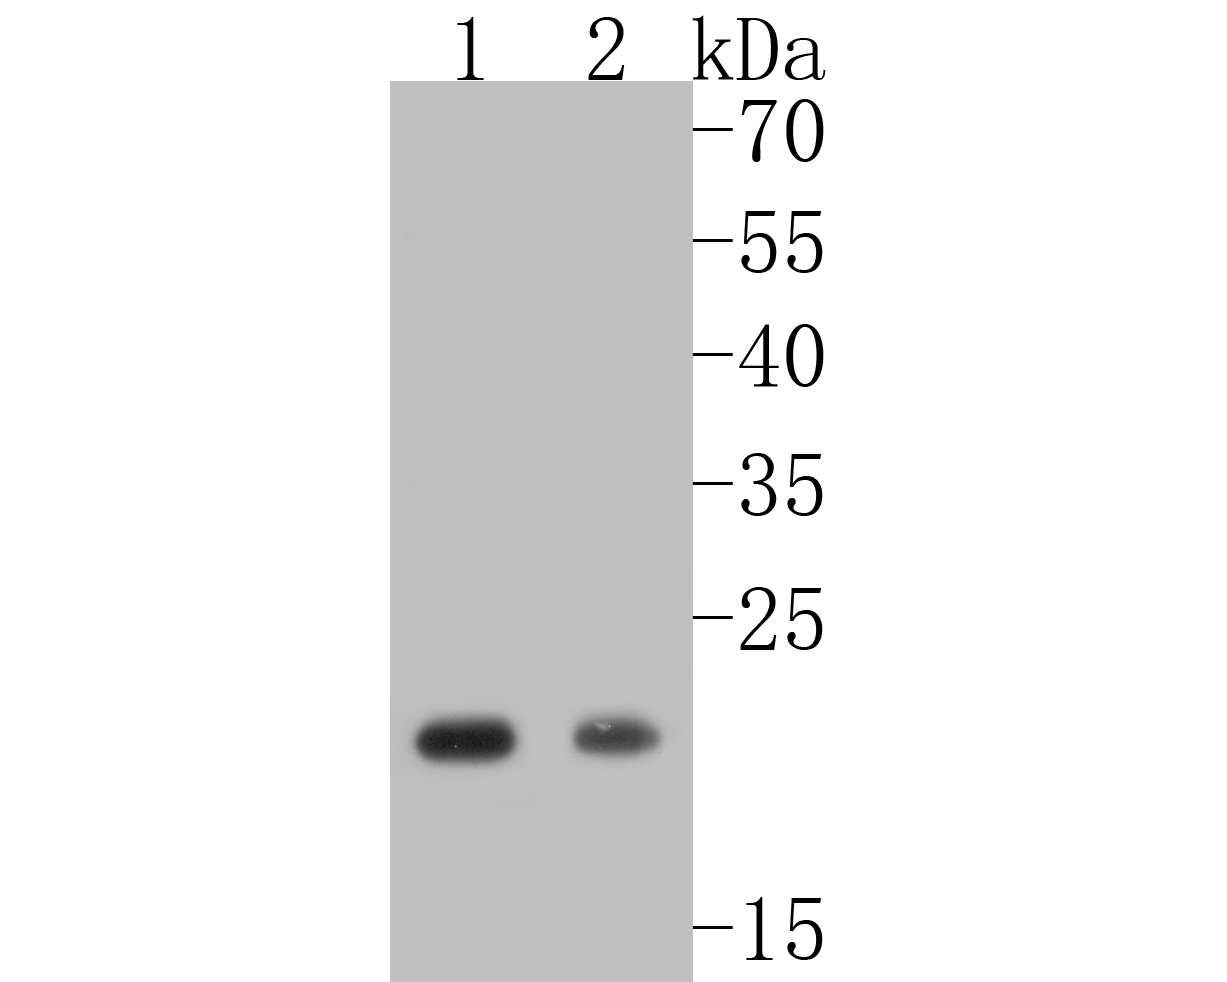 Western blot analysis of Caveolin-1 on different lysates. Proteins were transferred to a PVDF membrane and blocked with 5% BSA in PBS for 1 hour at room temperature. The primary antibody (ET1603-1, 1/500) was used in 5% BSA at room temperature for 2 hours. Goat Anti-Rabbit IgG - HRP Secondary Antibody (HA1001) at 1:5,000 dilution was used for 1 hour at room temperature.<br /> Positive control: <br /> Lane 1: A549 cell lysate<br /> Lane 2: A431 cell lysate